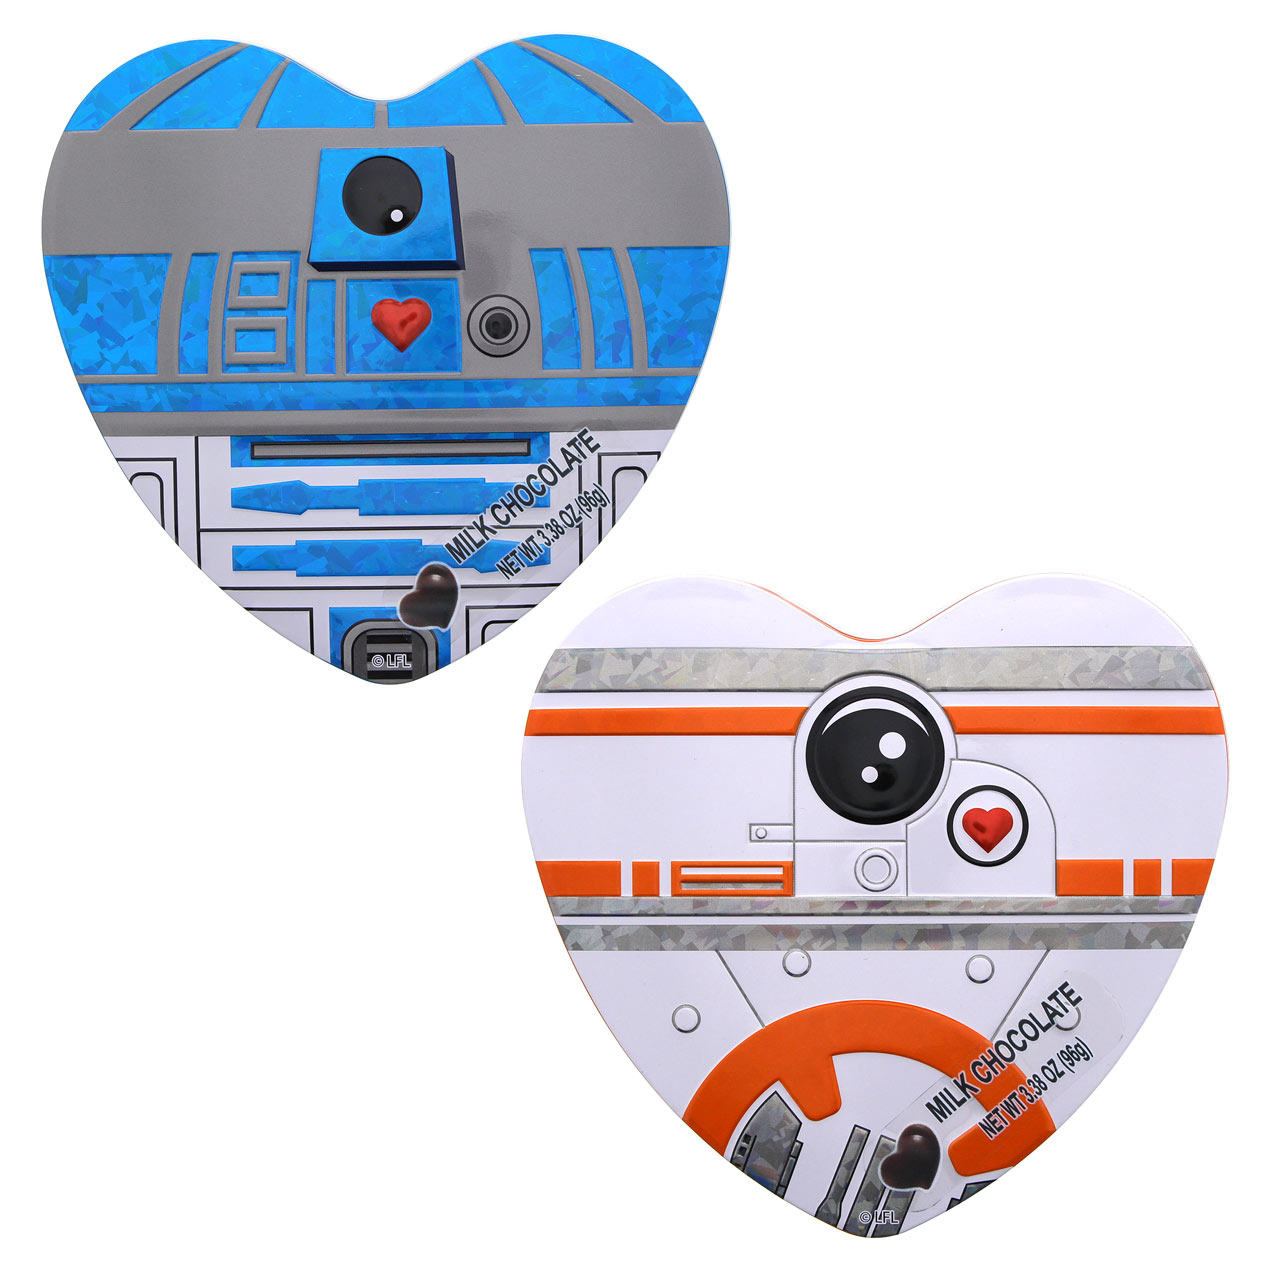 Galerie droid valentines day box